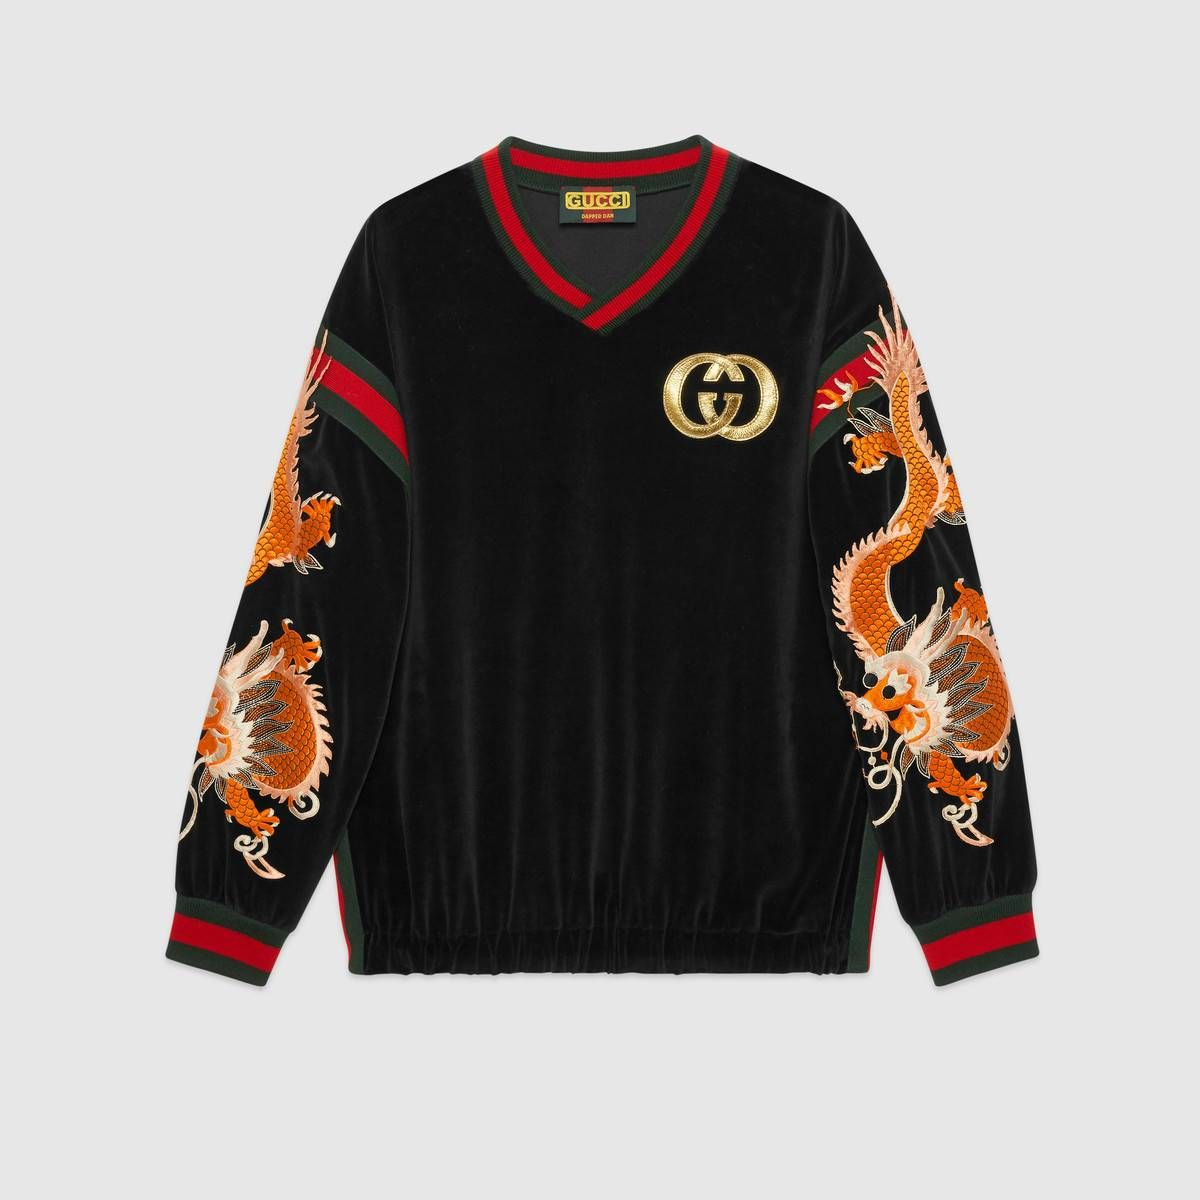 532d528c Shop the Gucci-Dapper Dan sweatshirt by Gucci. Introducing the Gucci-Dapper  Dan collection for Fall Winter 2018. In the '80s and '90s, Dapper Dan, ...